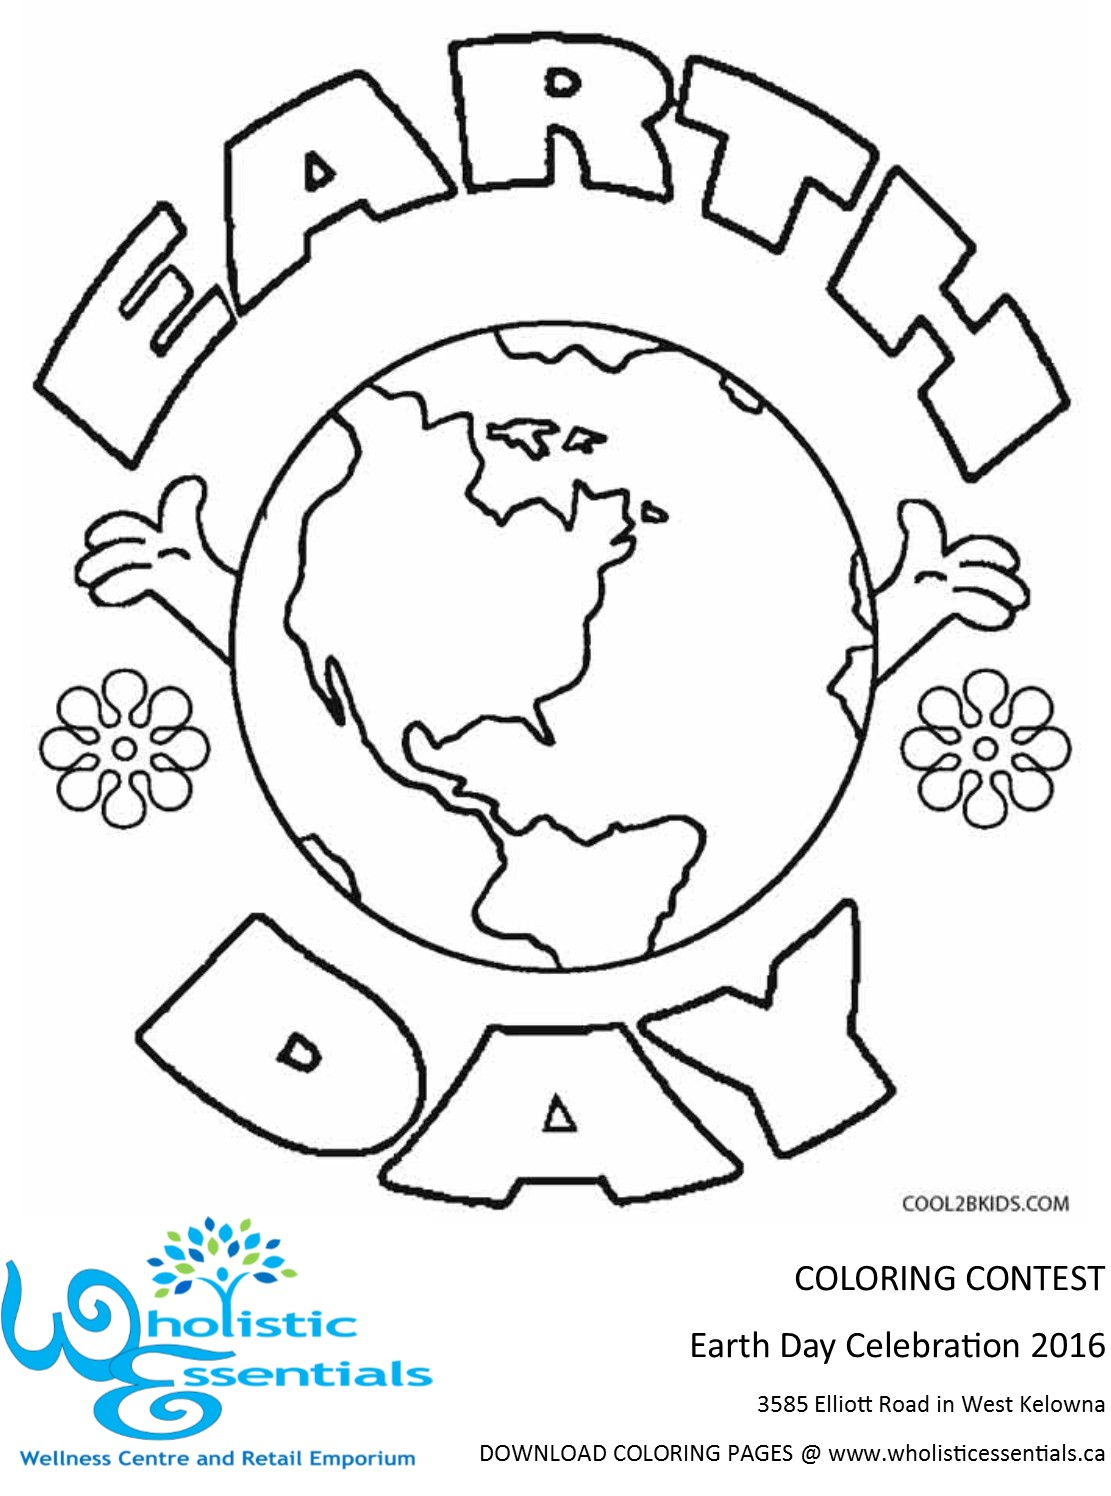 Wholistic Essentials Earth Day Coloring Contest Pages